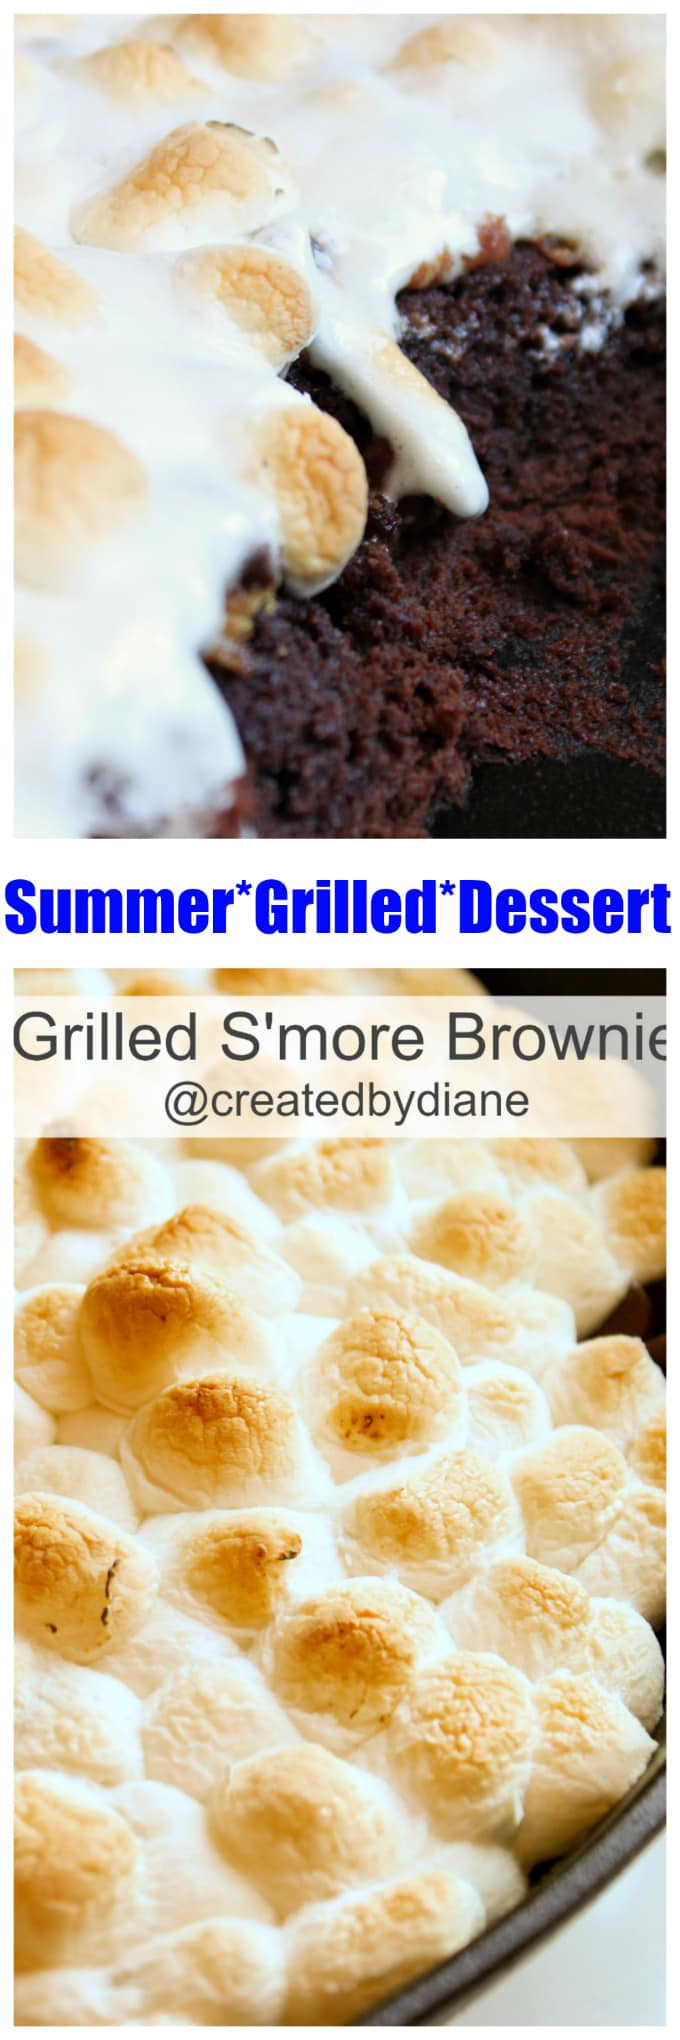 grilled smore brownie, S'more dessert from the Grill... recipe at www.createdby-diane.com